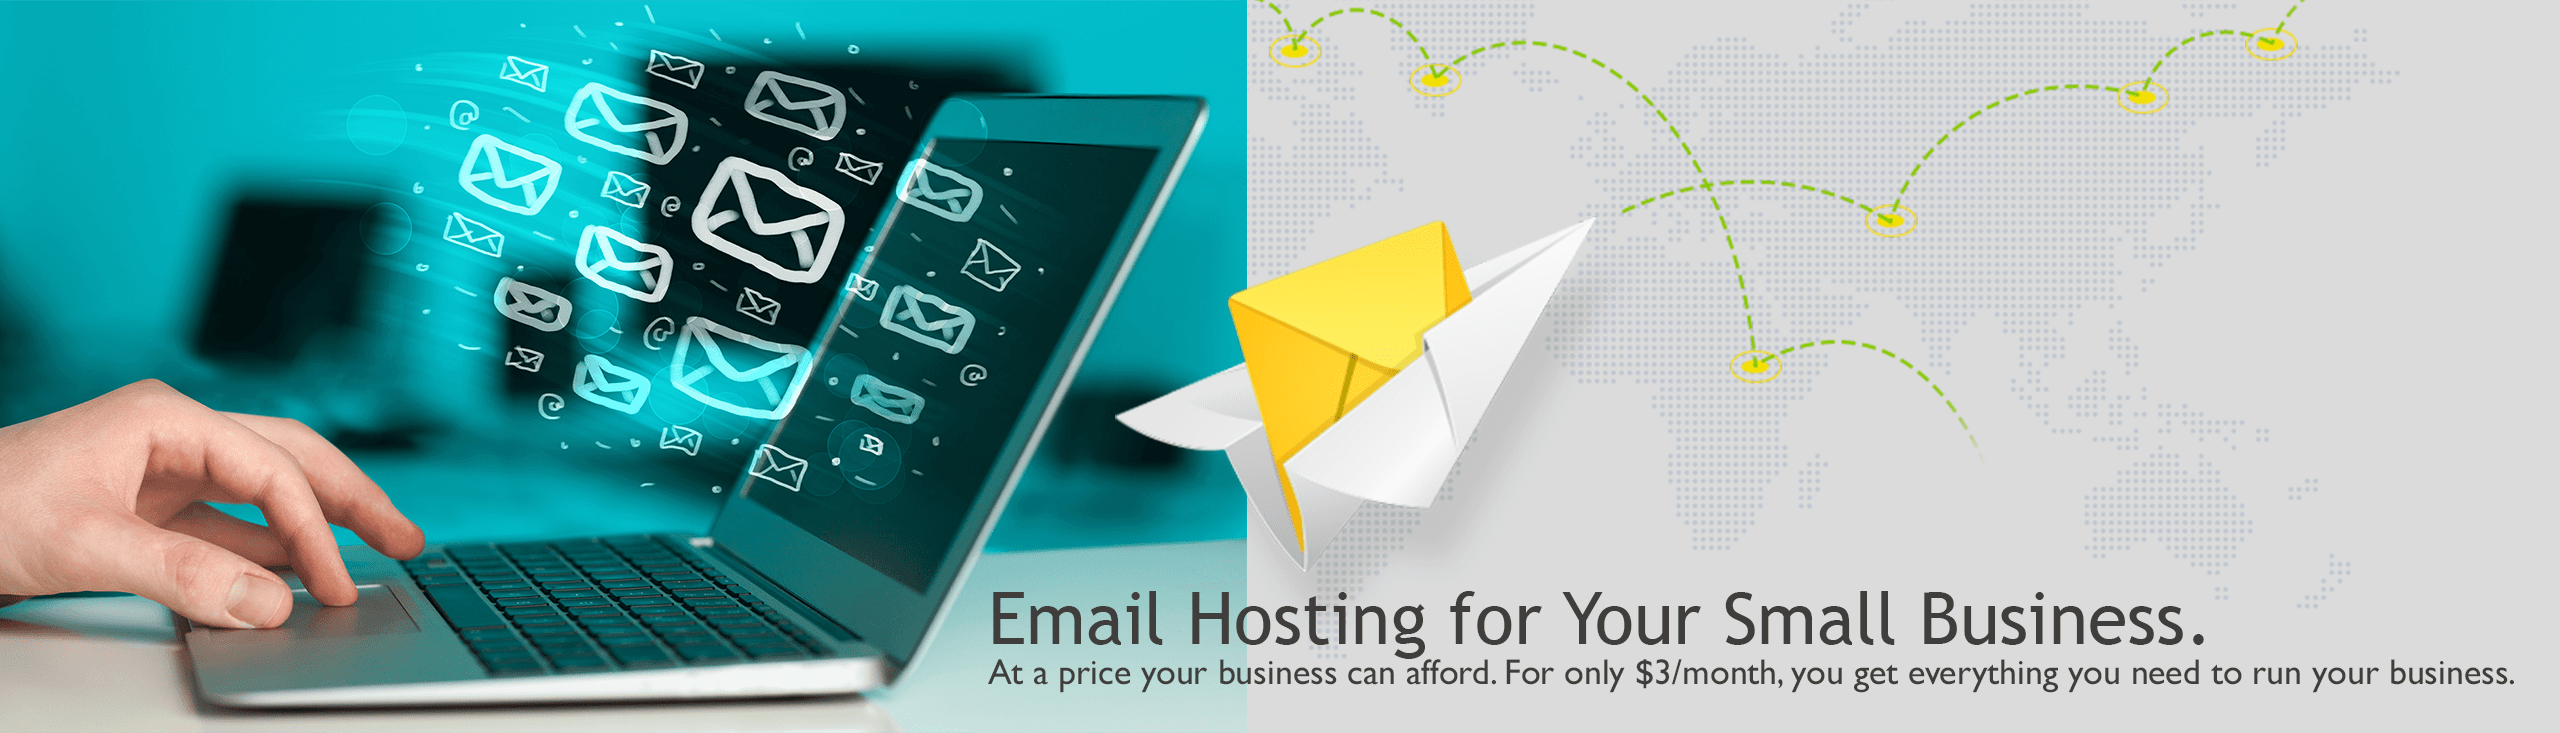 email hosting slide